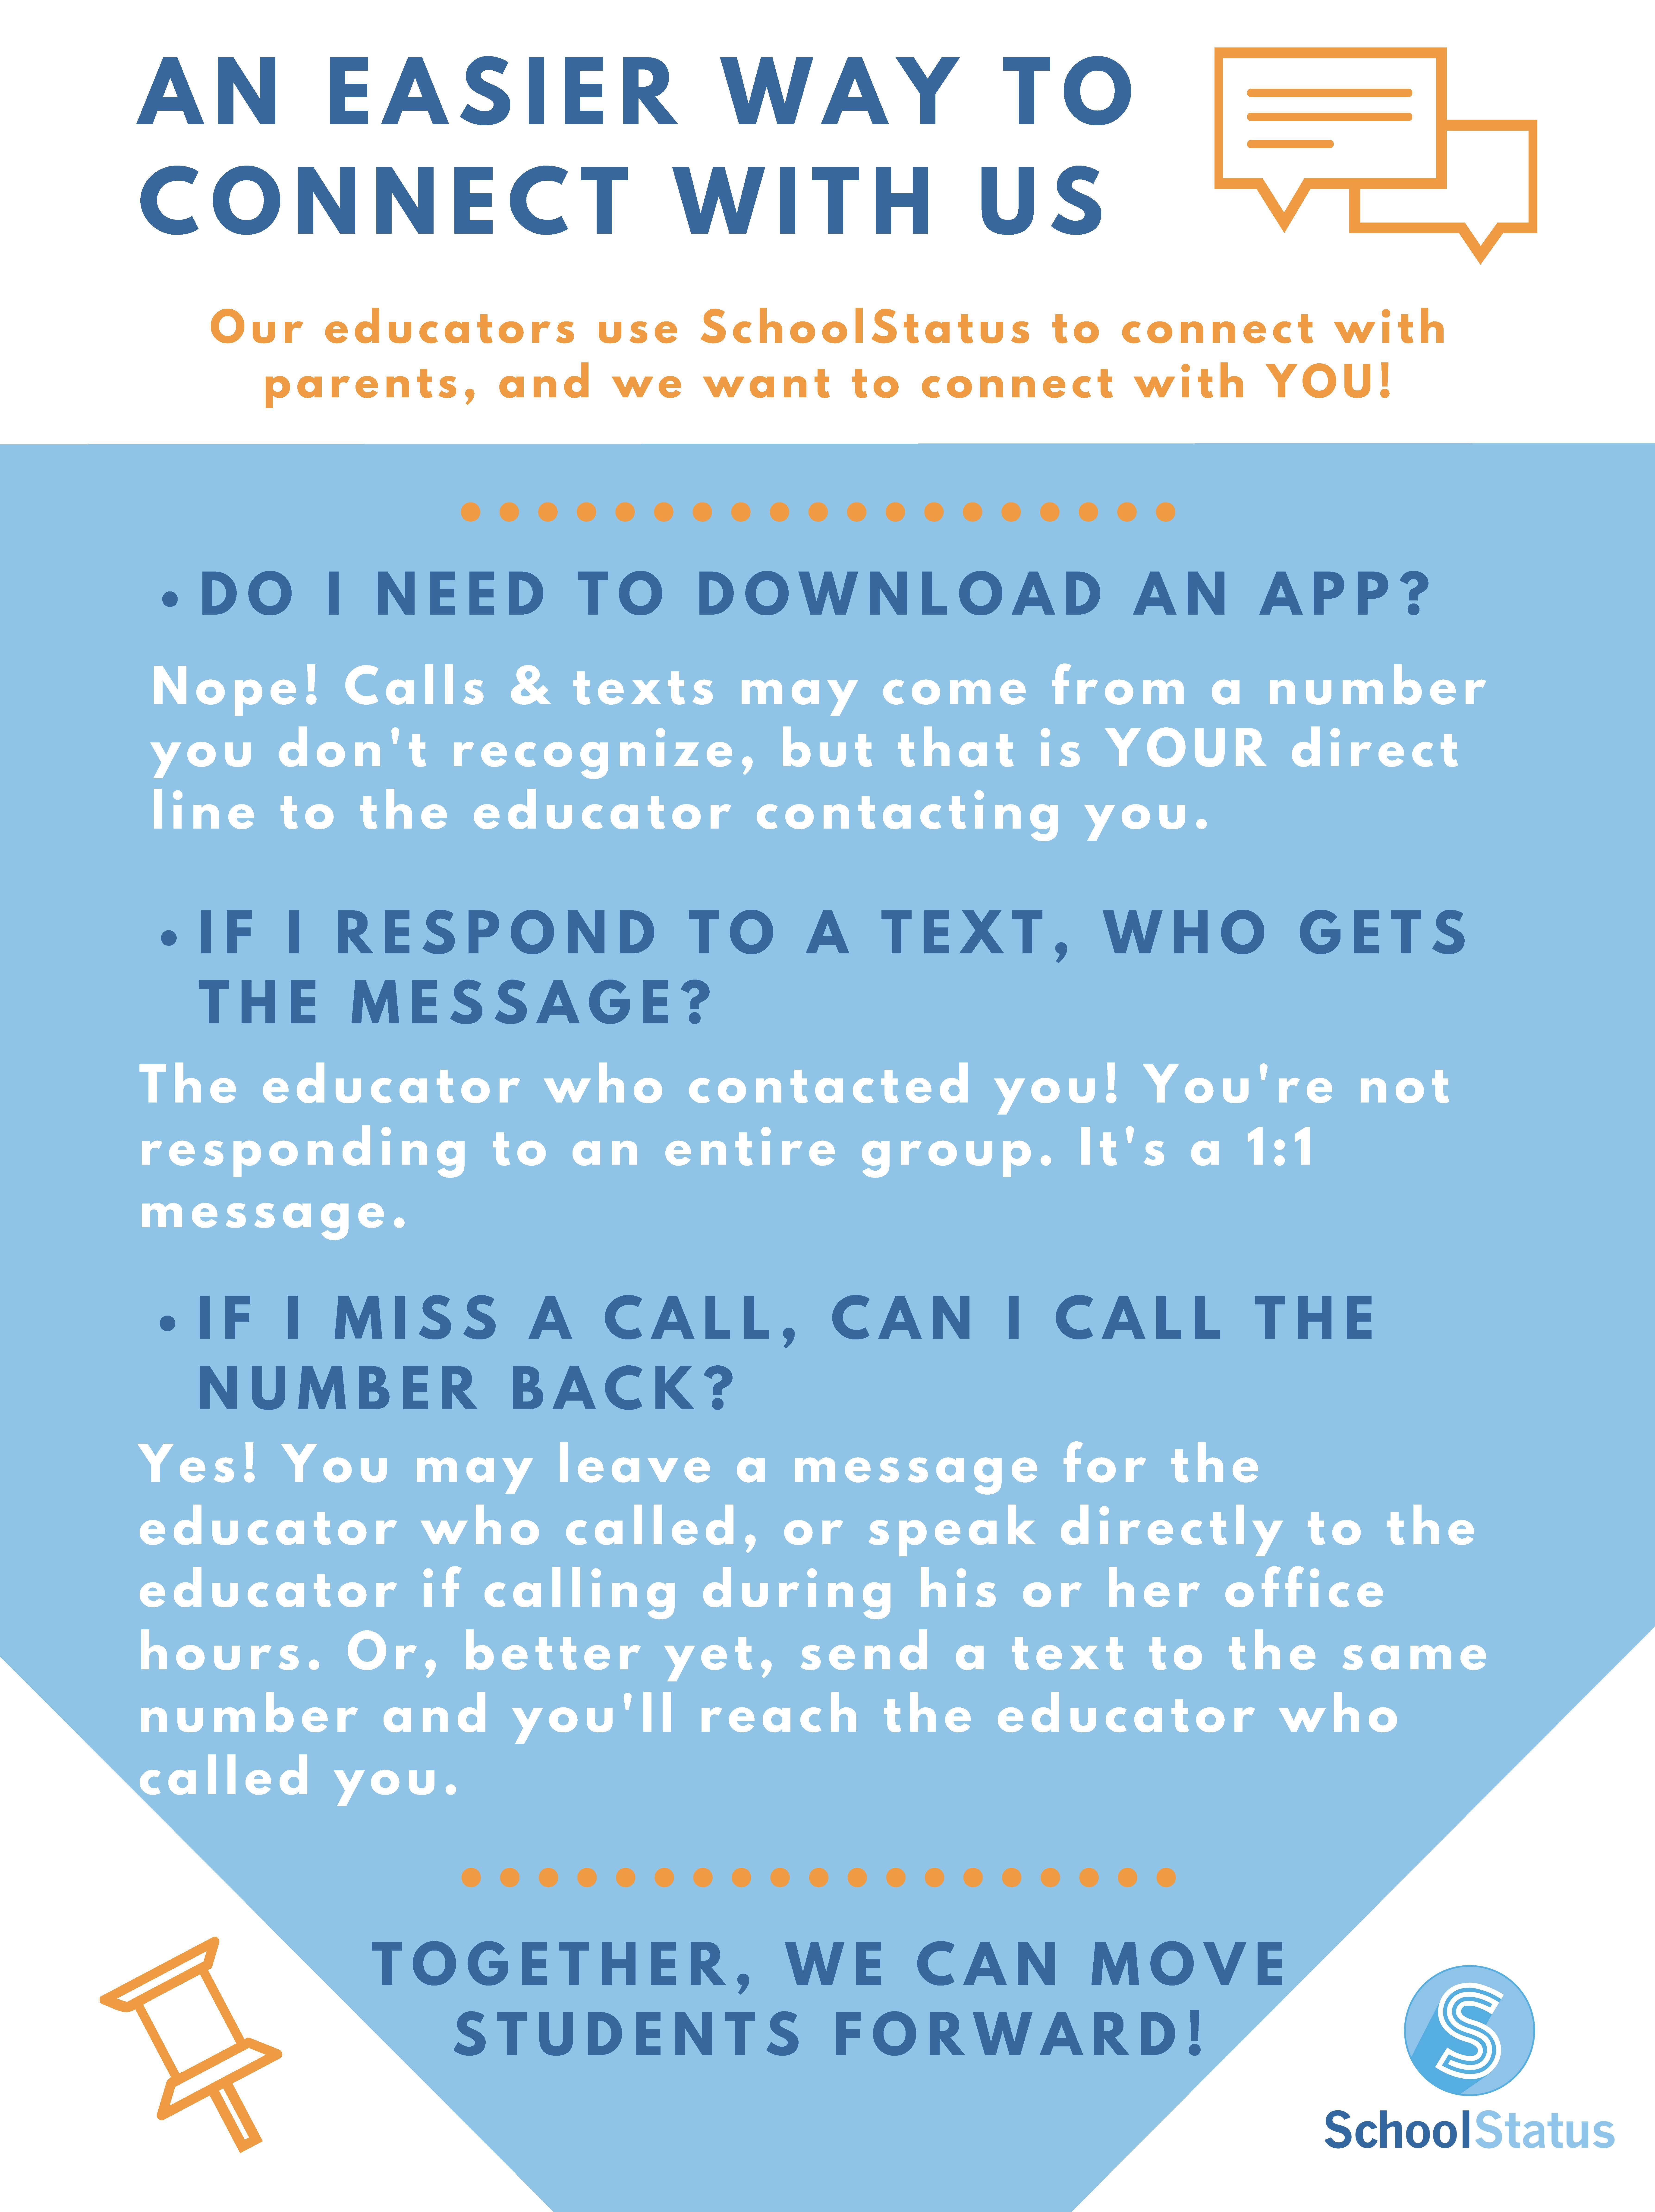 White Settlement ISD is excited to announce that we will launch an additional communication tool for our families in the coming week.